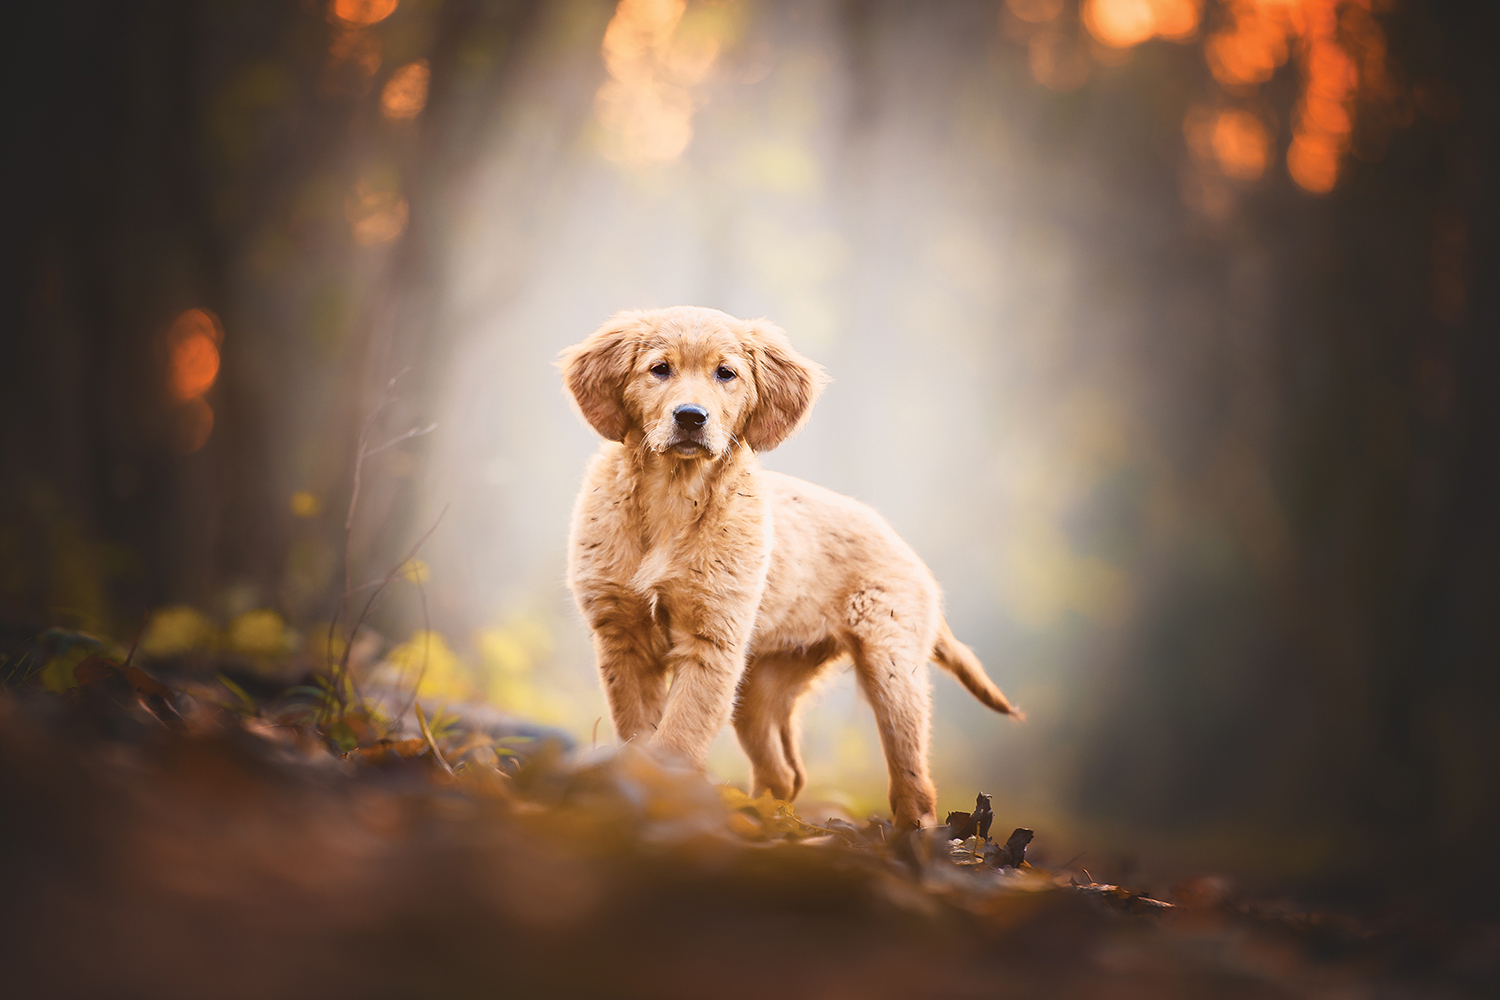 Photo of cute golden retriever puppy in an autumn setting with leaves